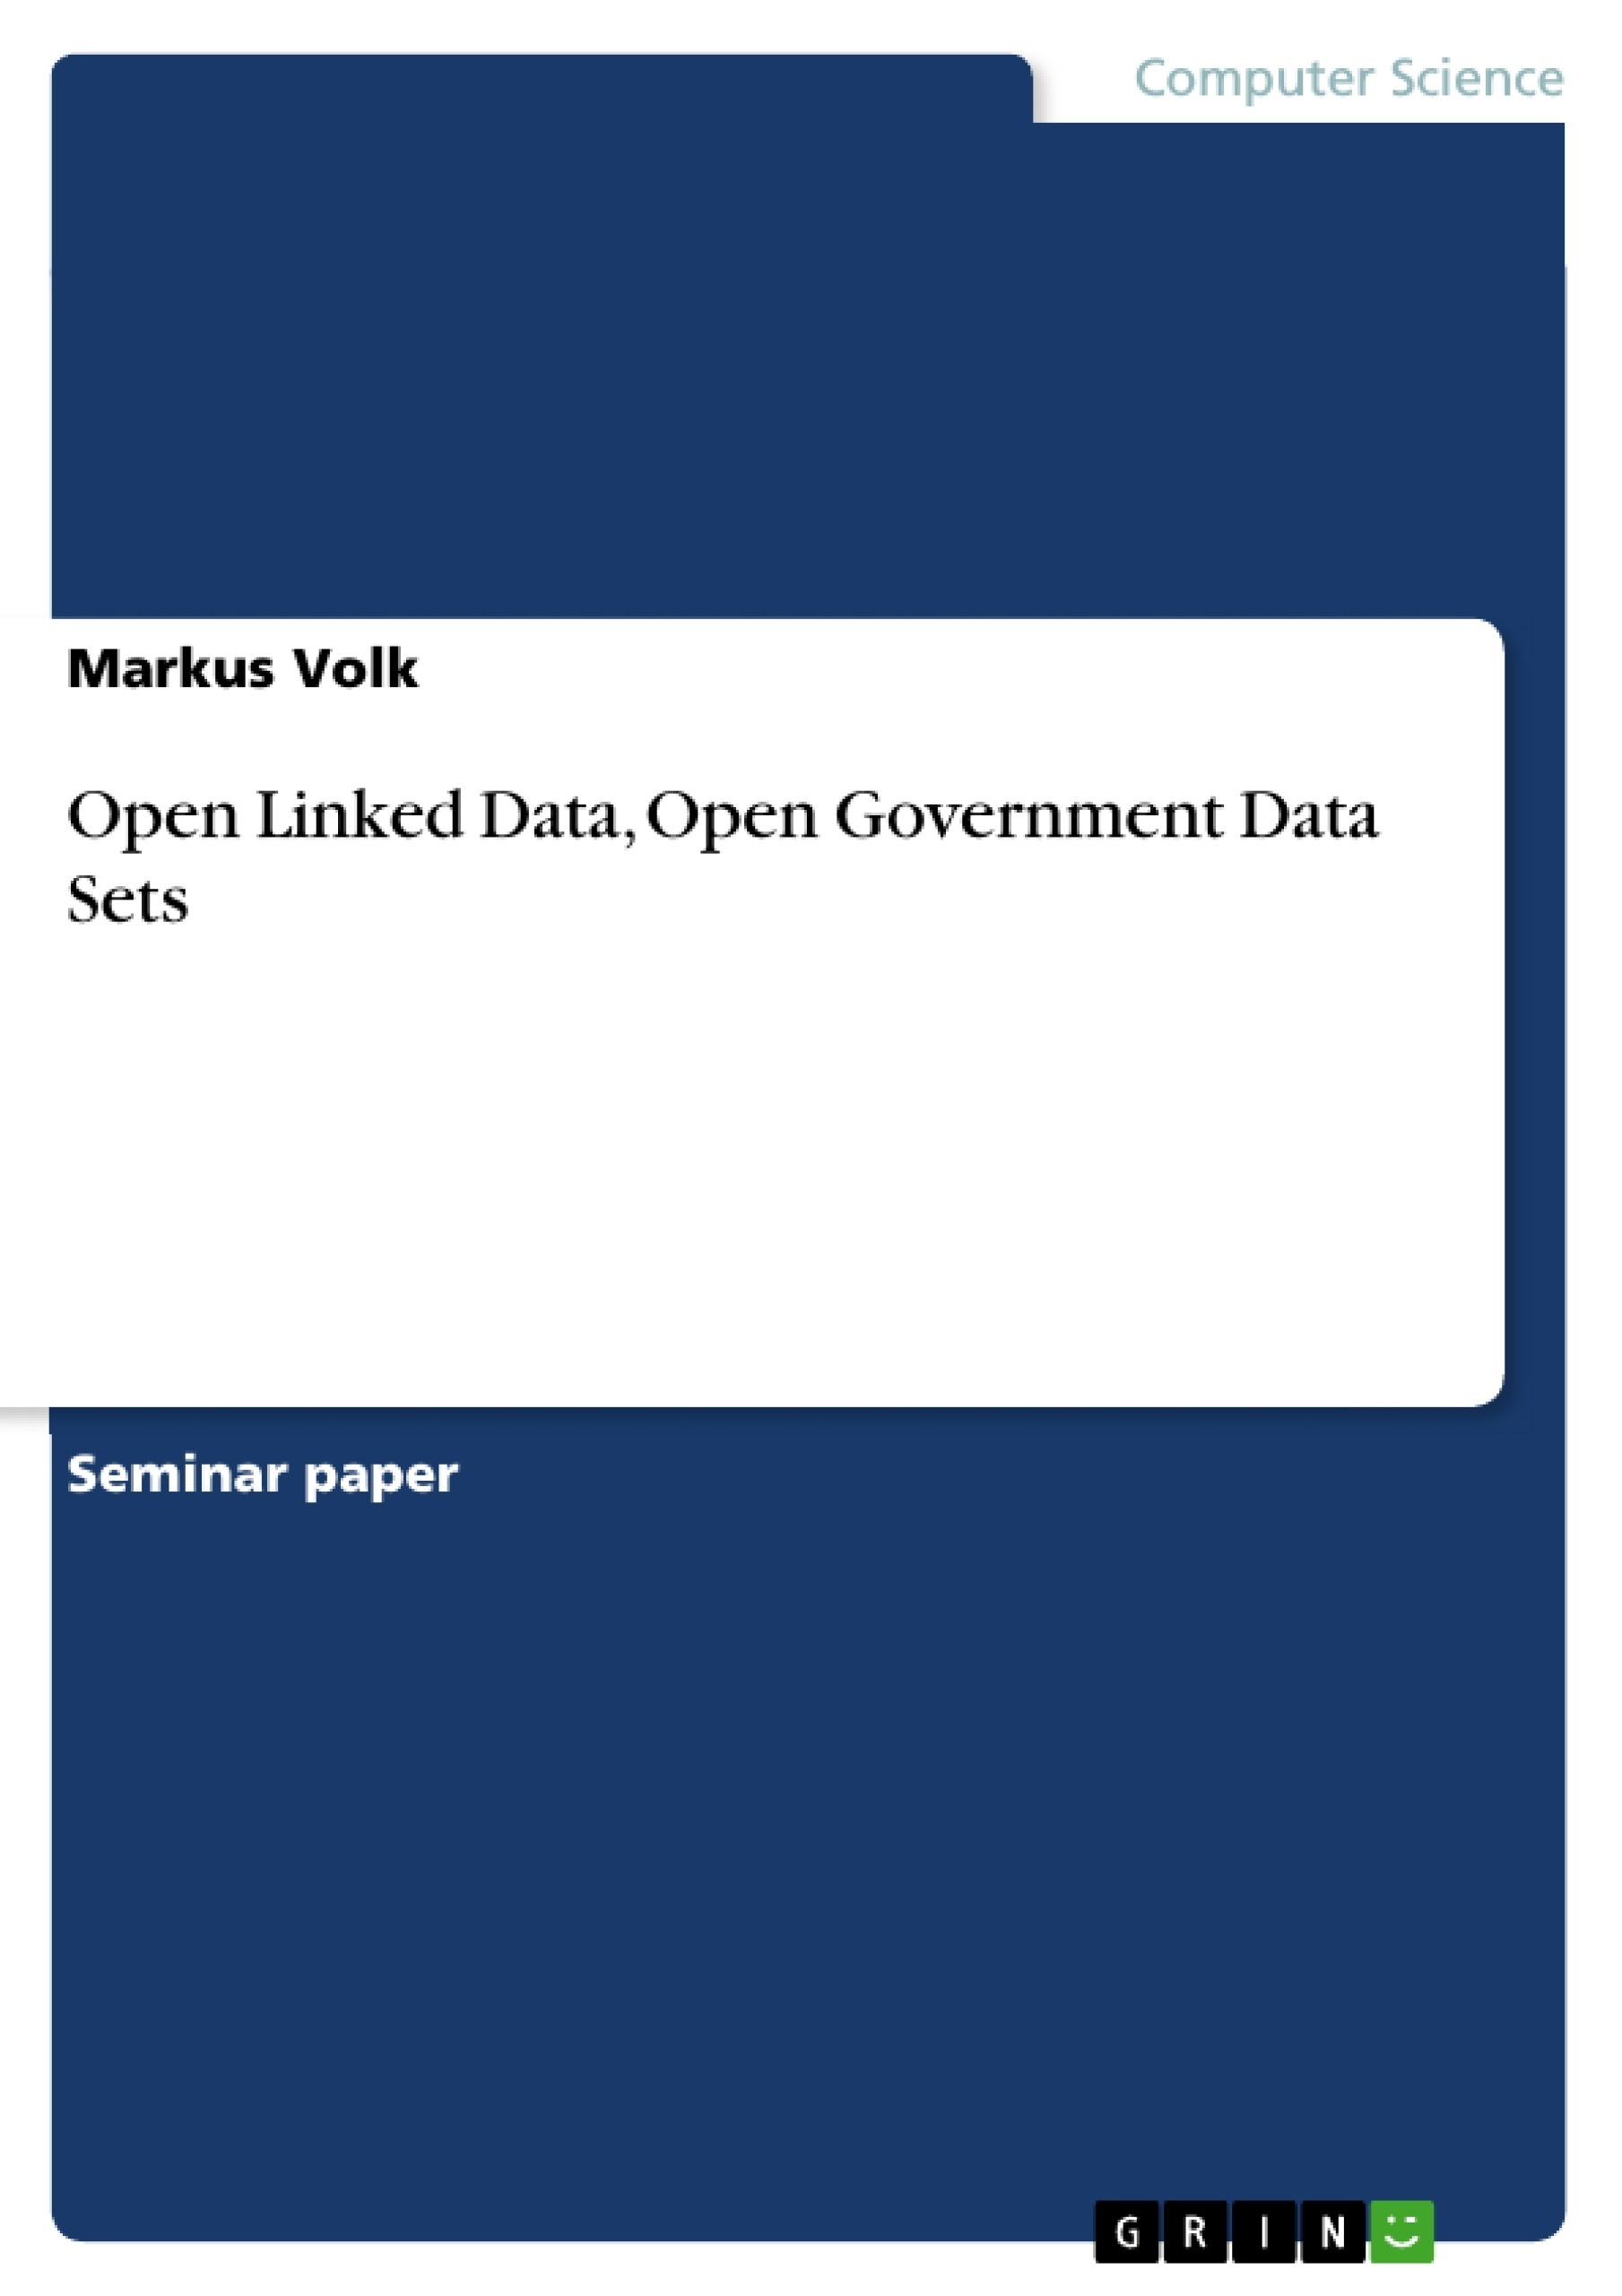 Title: Open Linked Data, Open Government Data Sets